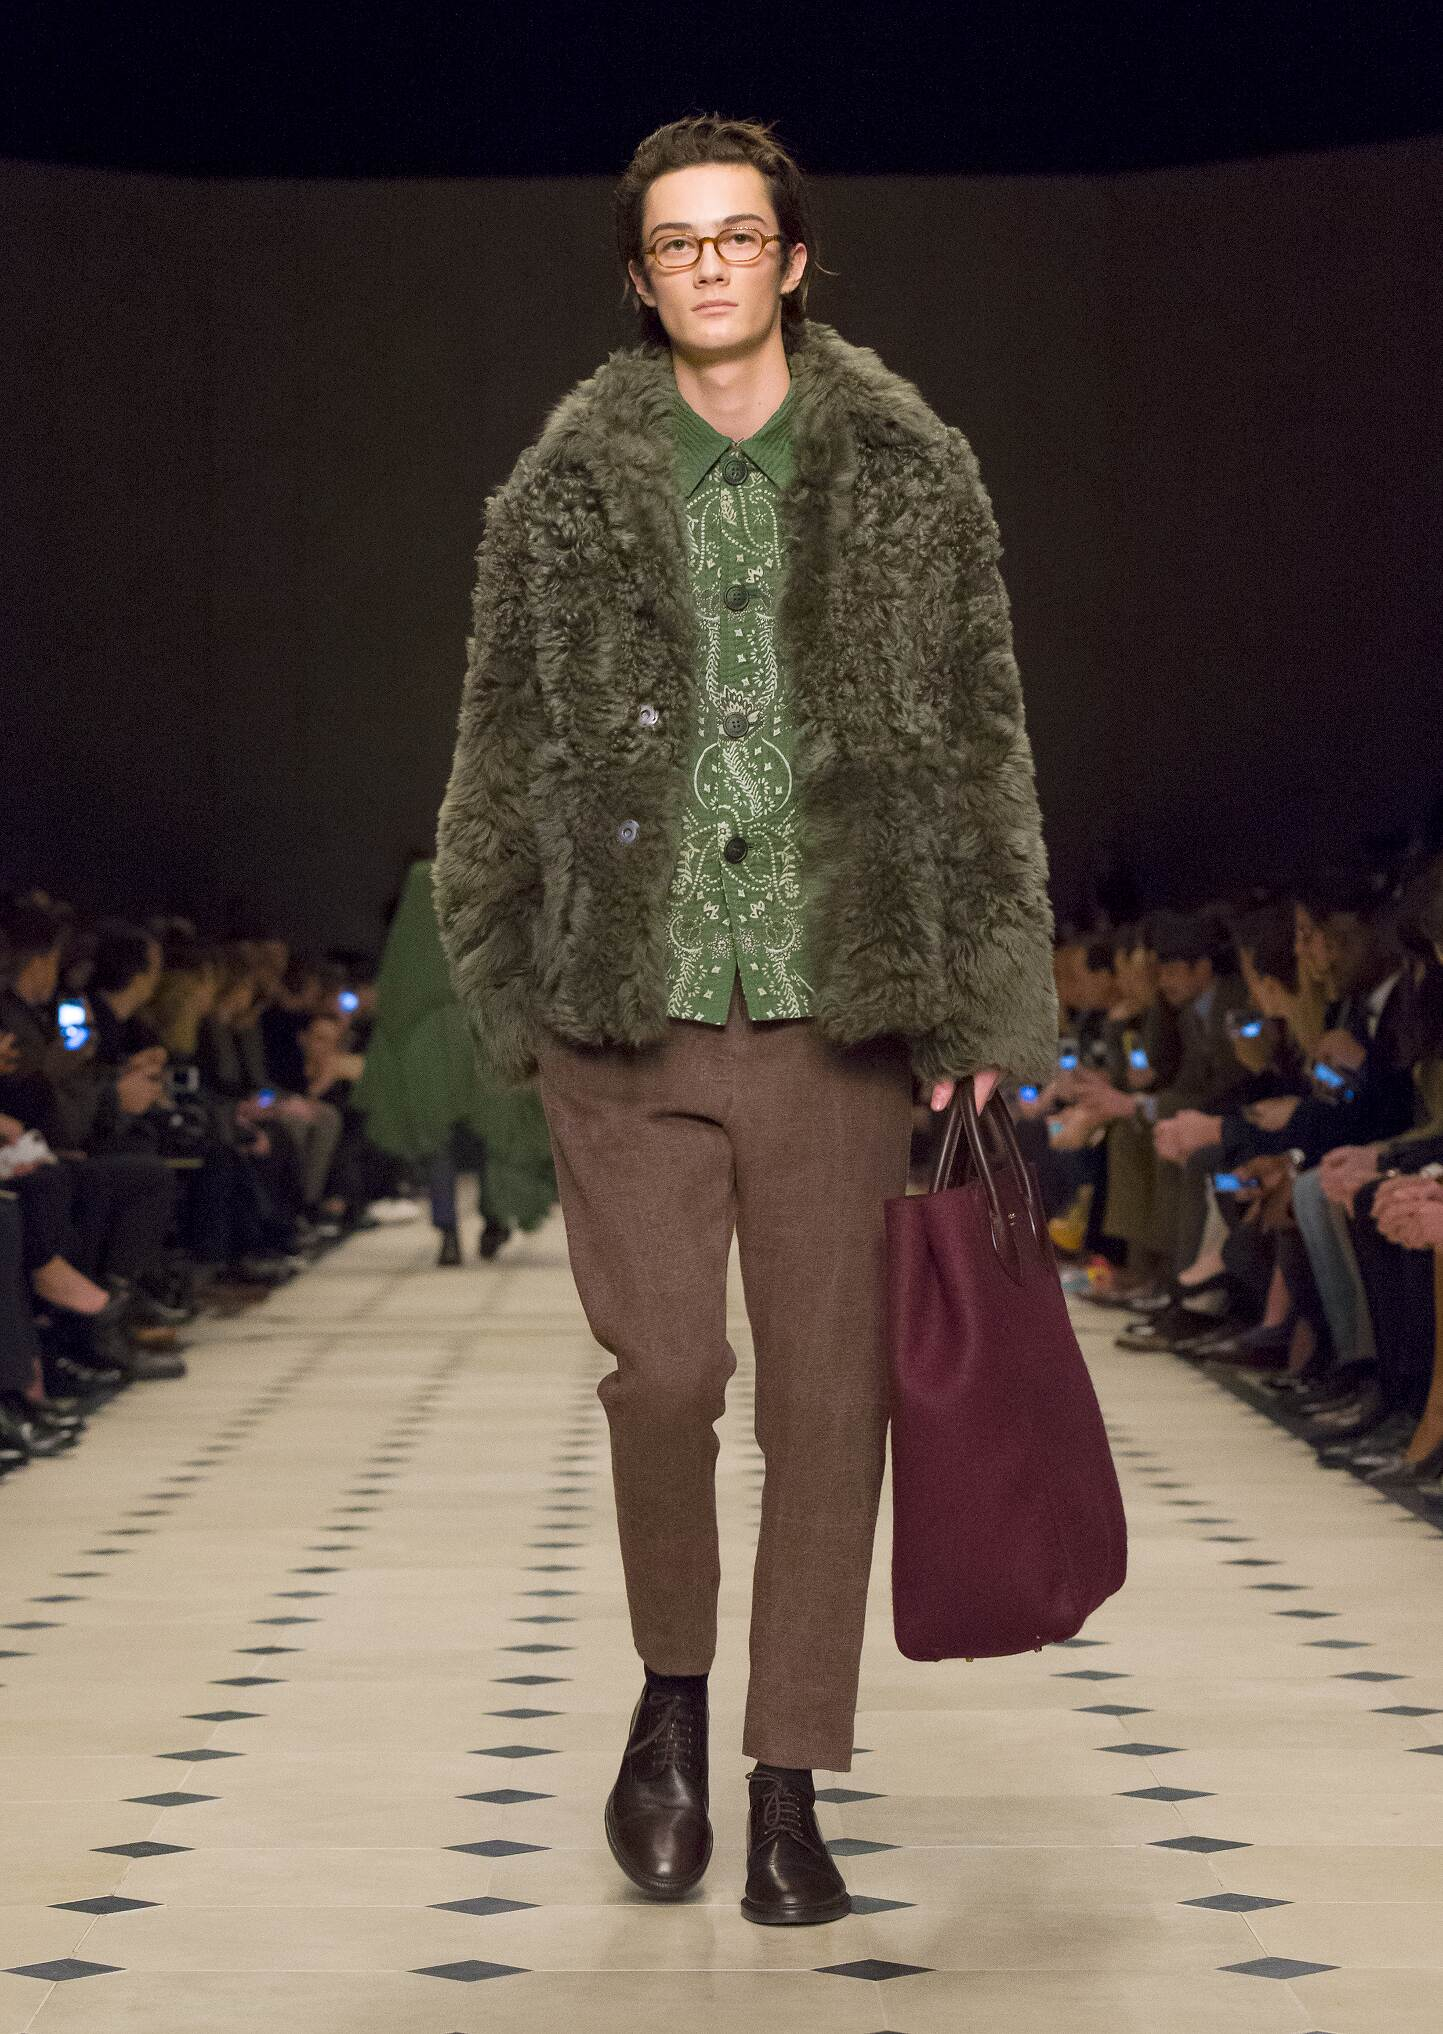 Winter Burberry Prorsum Trends 2015 Man